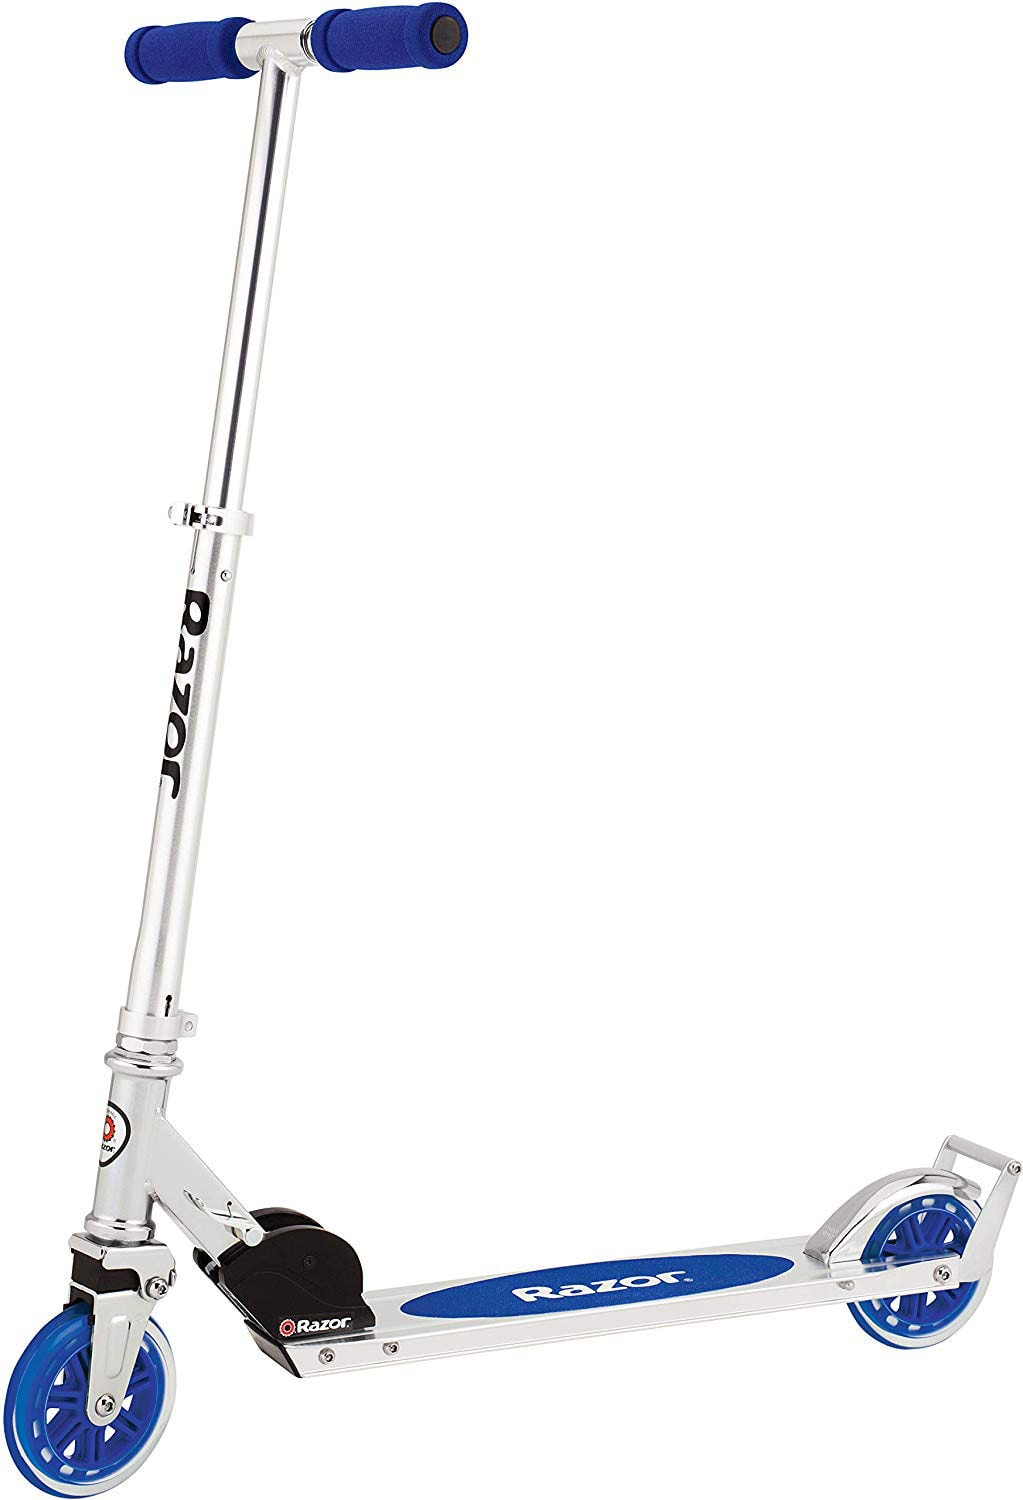 photo of a razor scooter